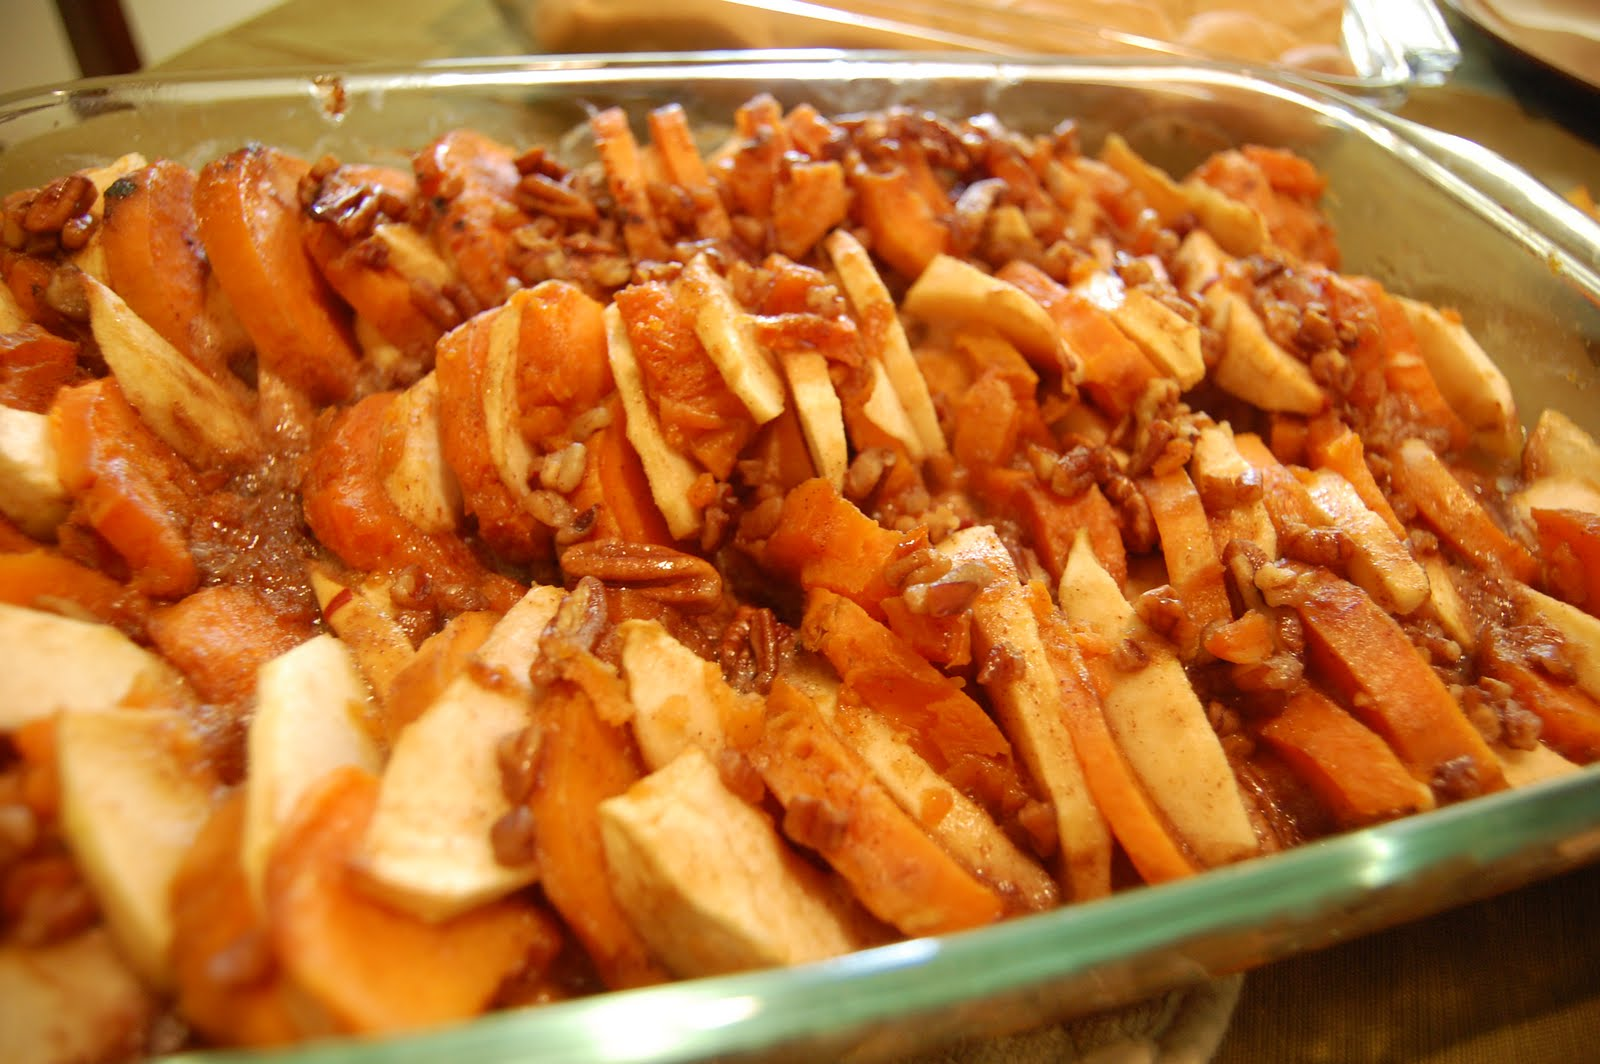 Roasted Apples and Sweet Potatoes with Honey Glaze